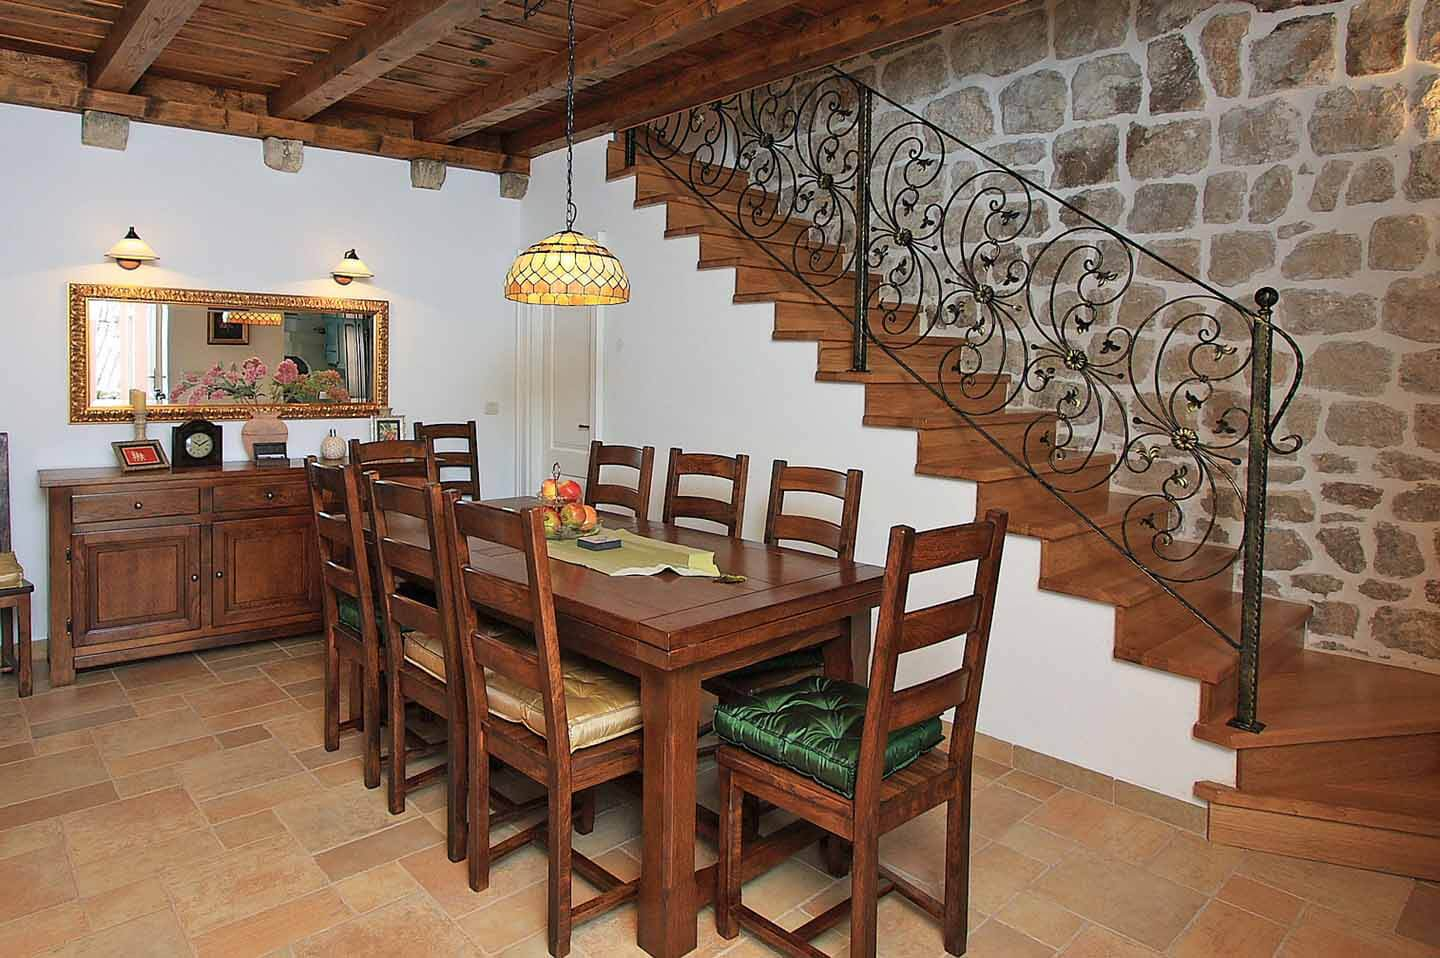 Dining table and stairs